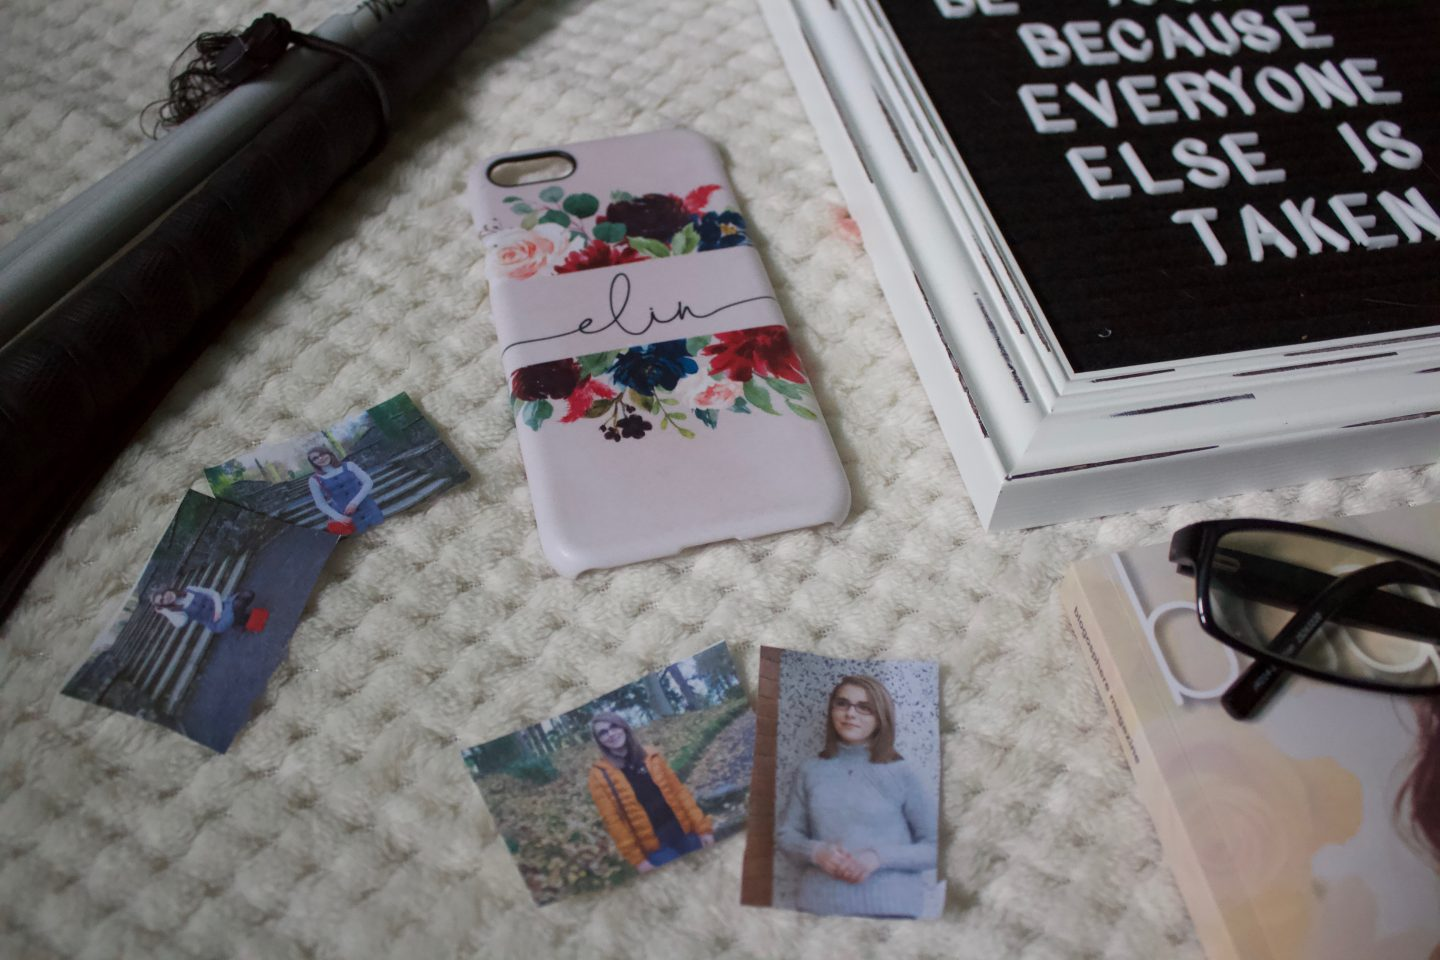 A photo which shows a personalised pink phone case and some small print out photos of me